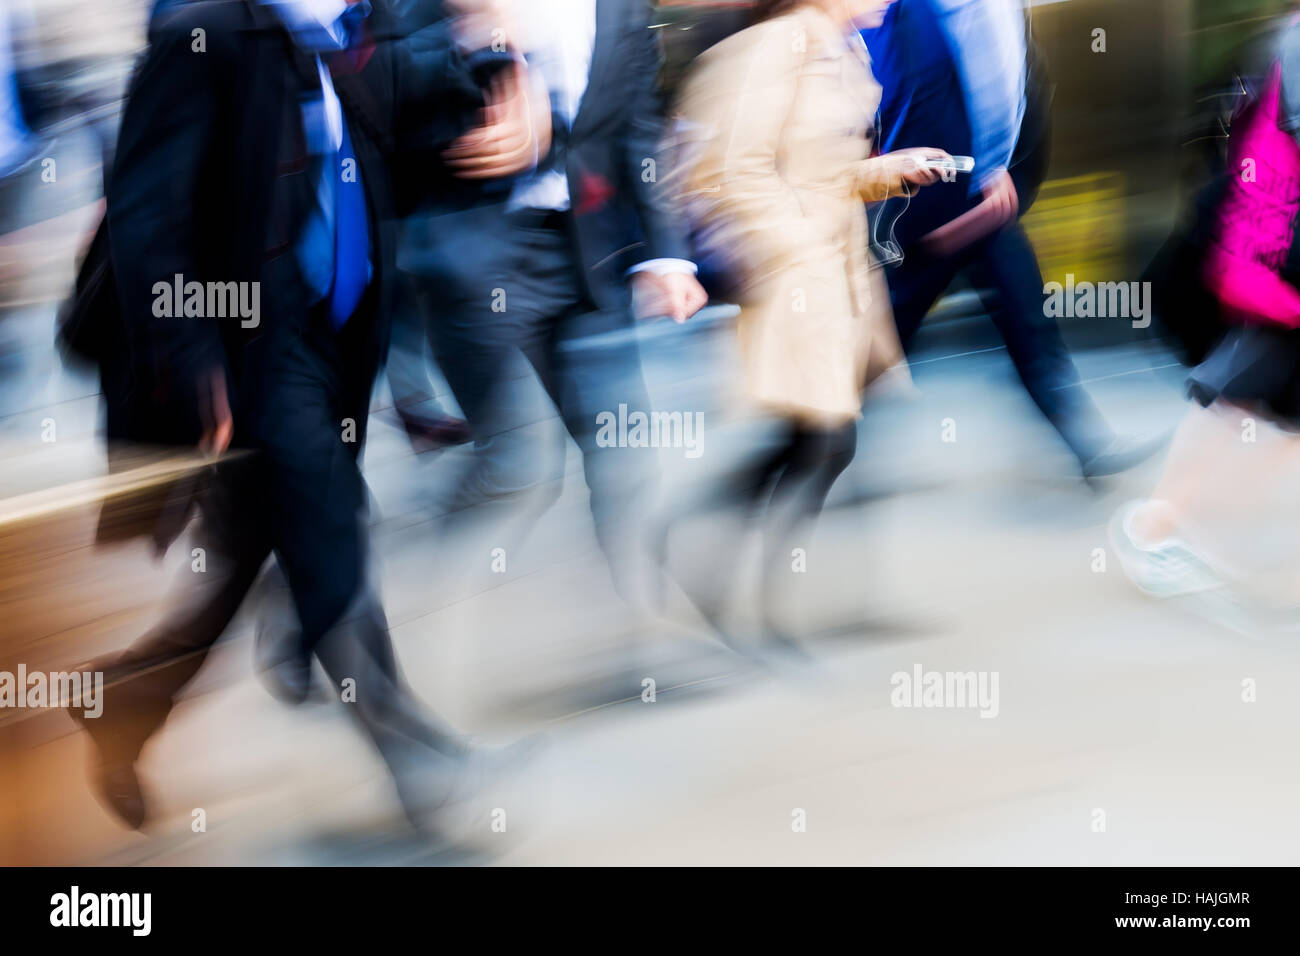 crowd of walking people in the city in motion blur - Stock Image